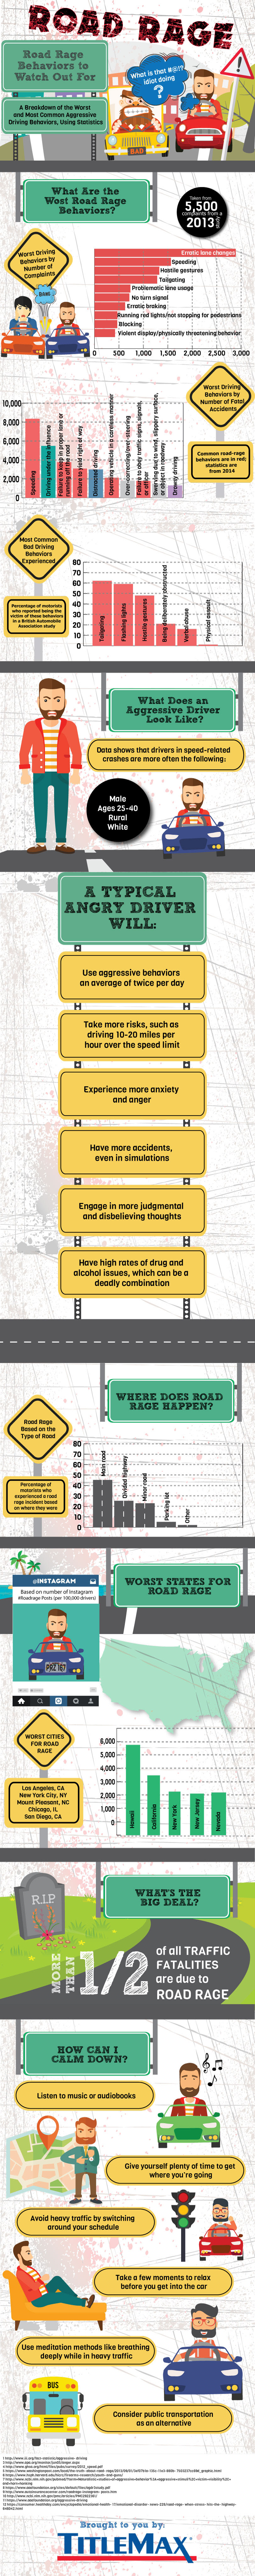 A Breakdown of the Worst and Most Common Aggressive Driving Behaviors, Using Statistics